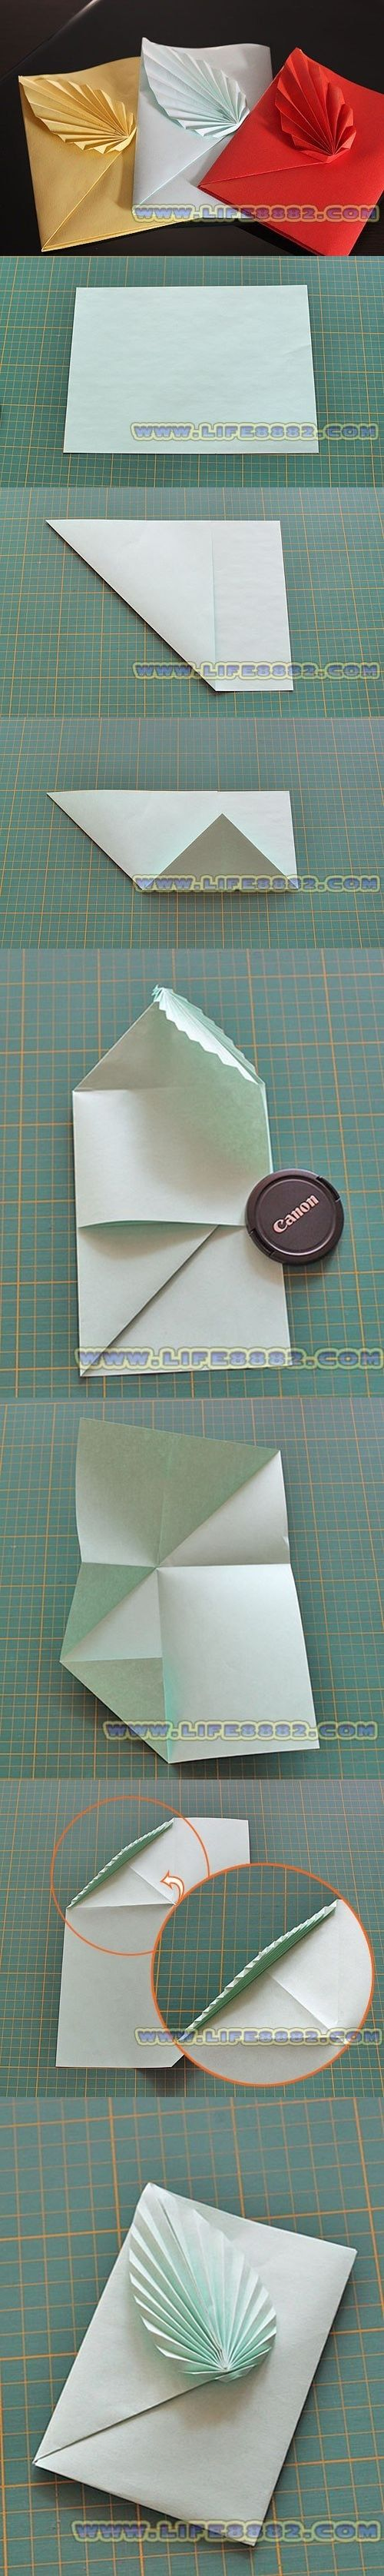 ♔ PAPER FOLDING ENVELOPE #GIFTWRAP